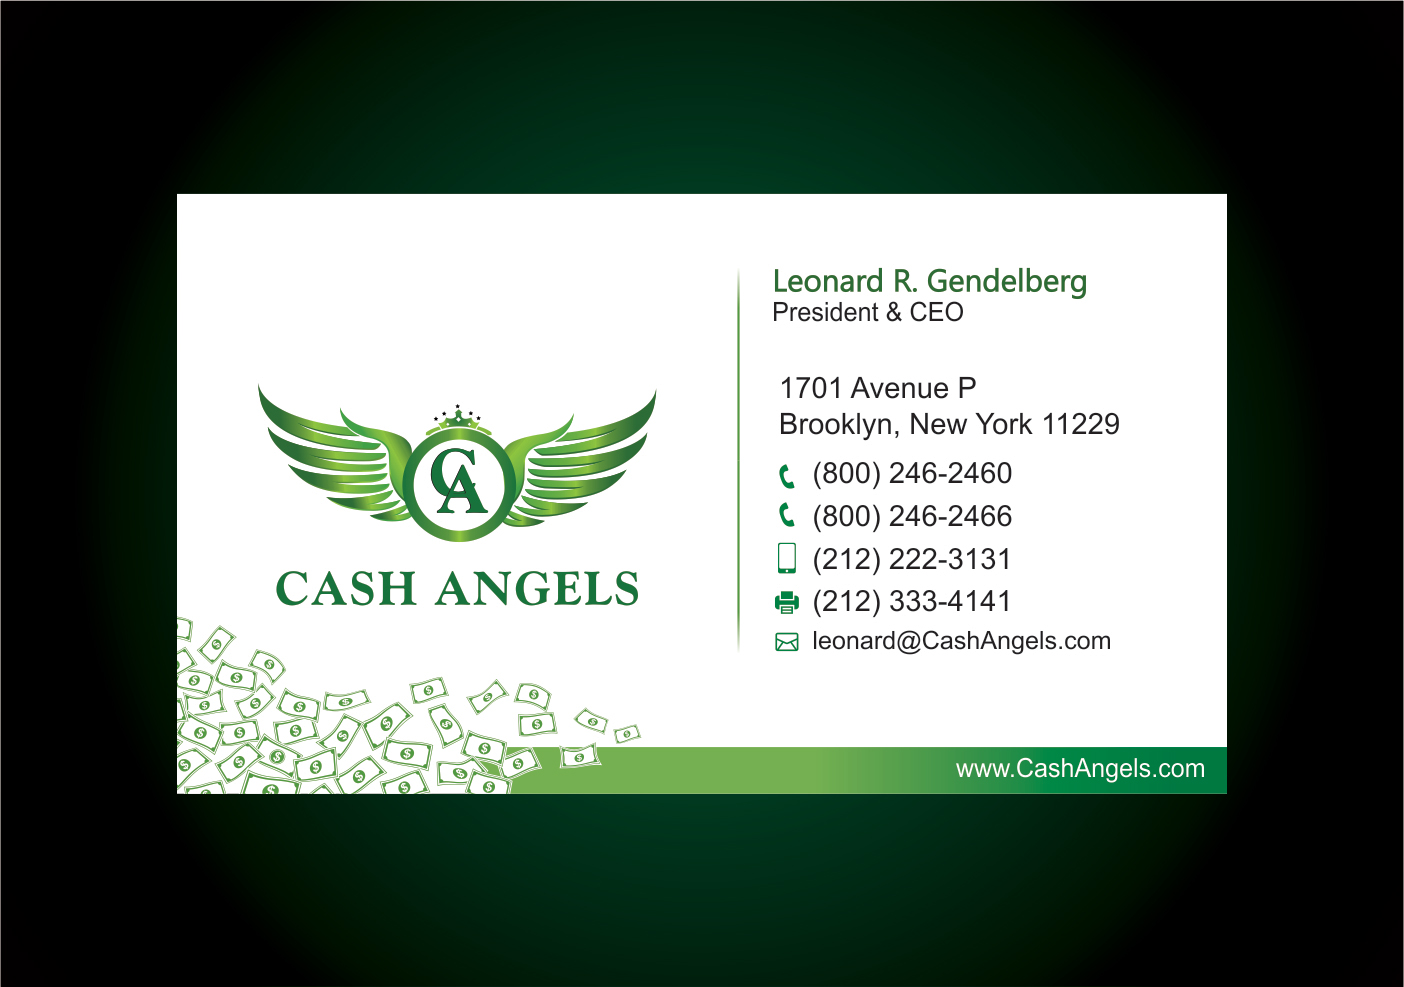 Business Card Design for Financial Services Company - Financial Services